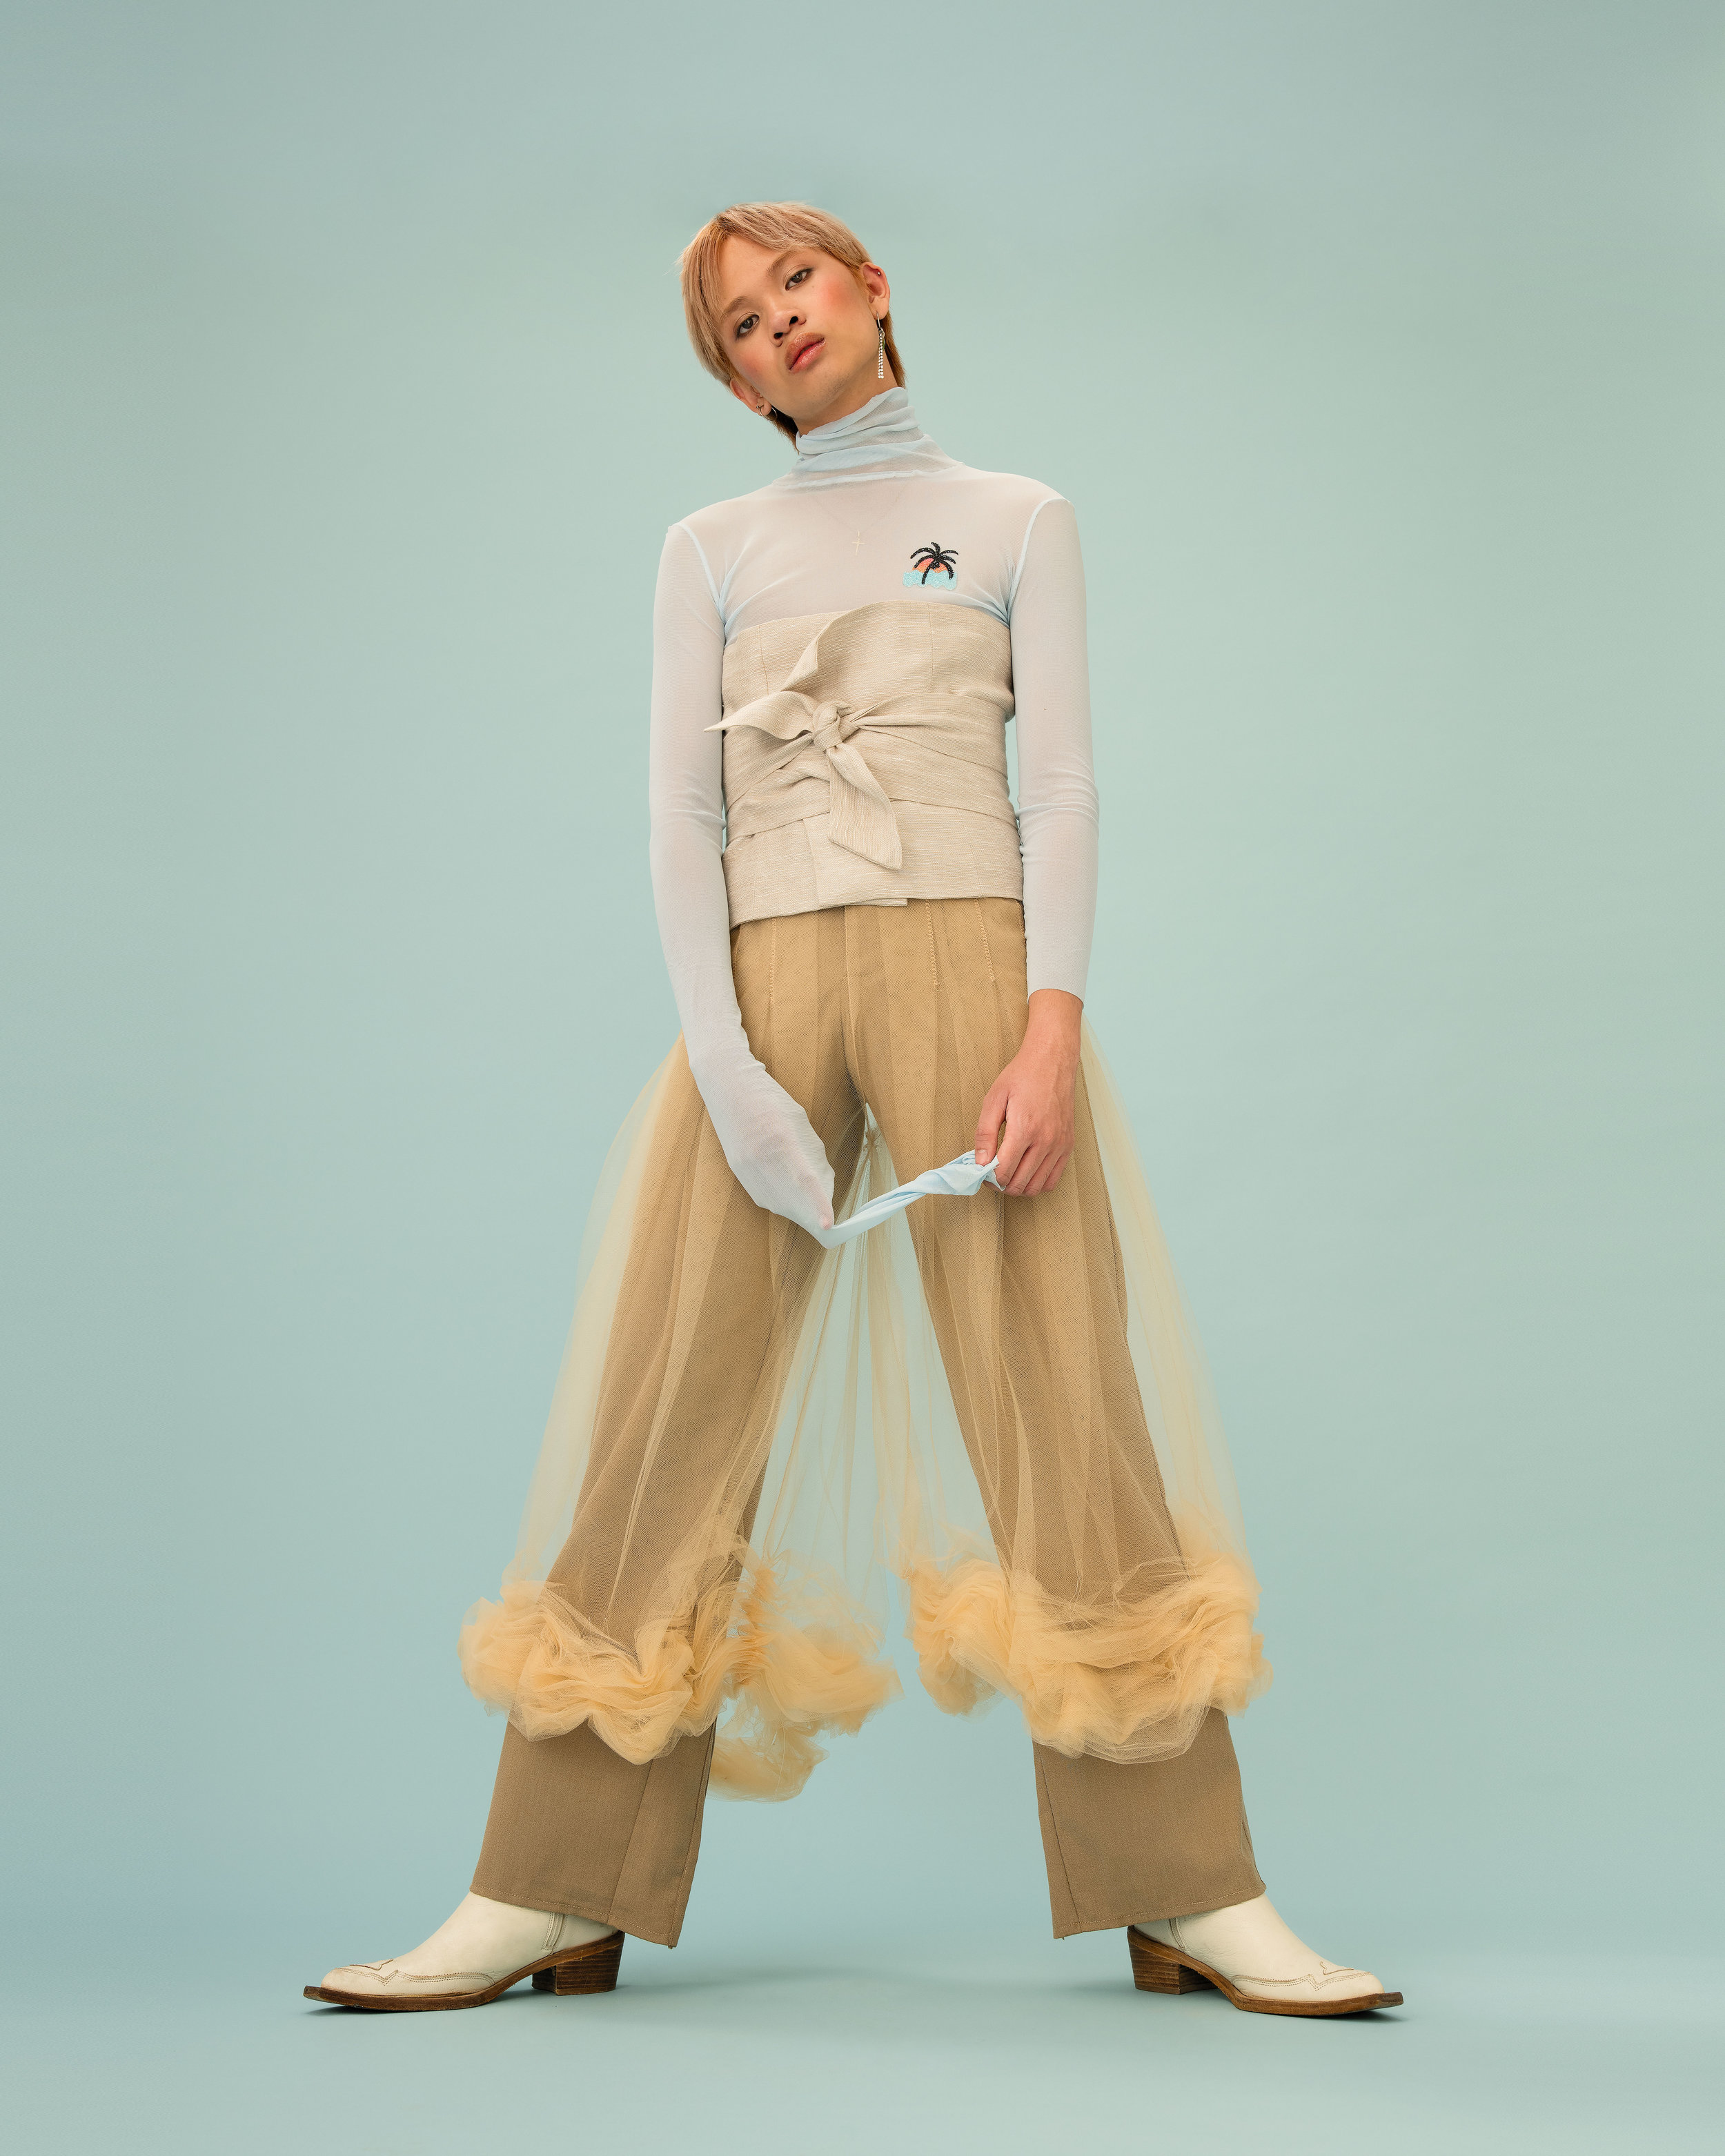 Jimmy wearing our Tulle pants for Medusa magazine   https://www.medusa.ovh/homepage-collection/jimmy#0